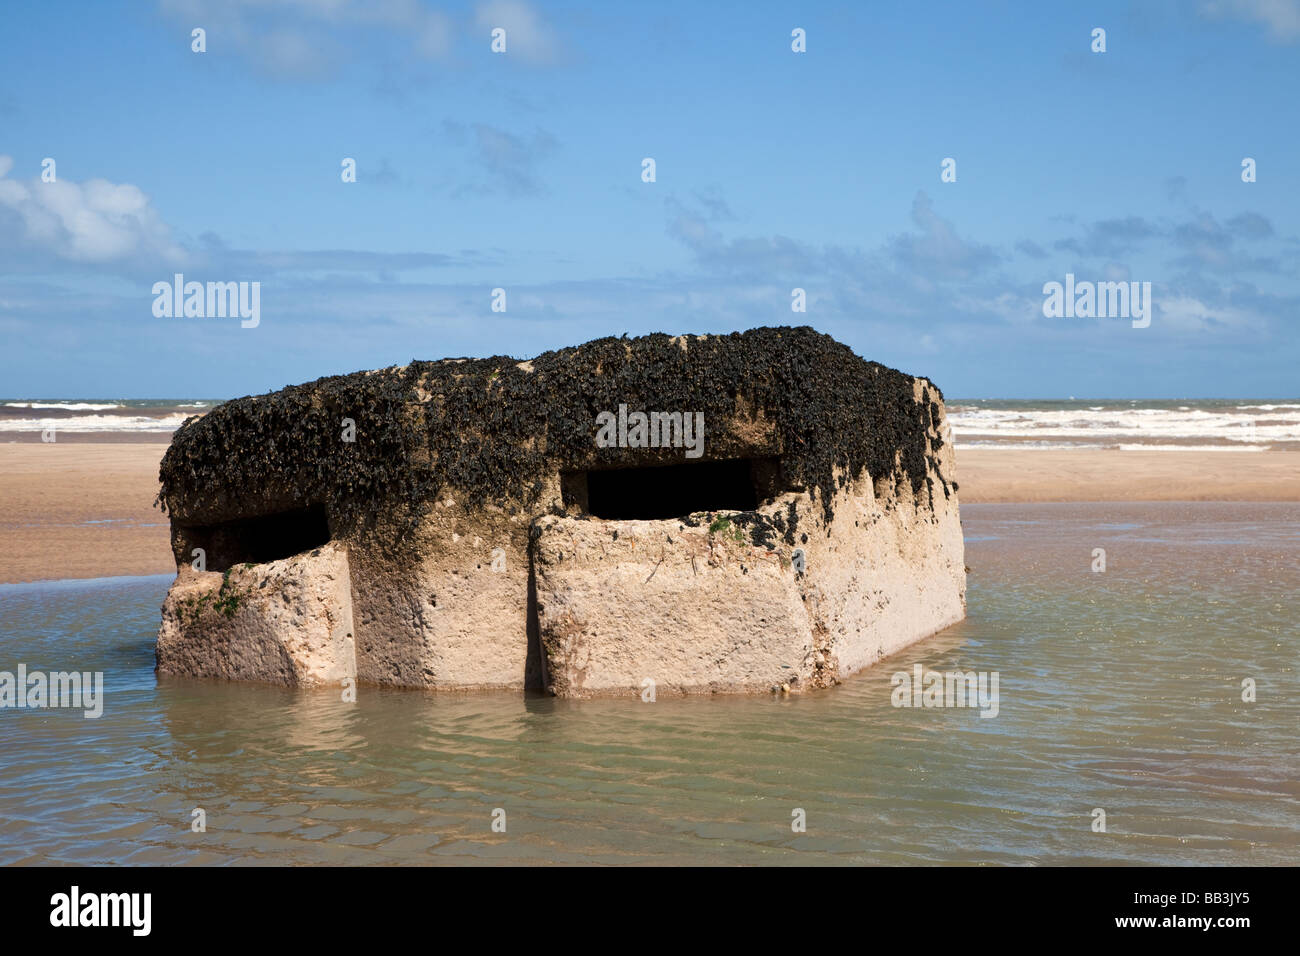 WW2 pillbox ruin on the beach near Easington, East Yorkshire, England, UK - Stock Image